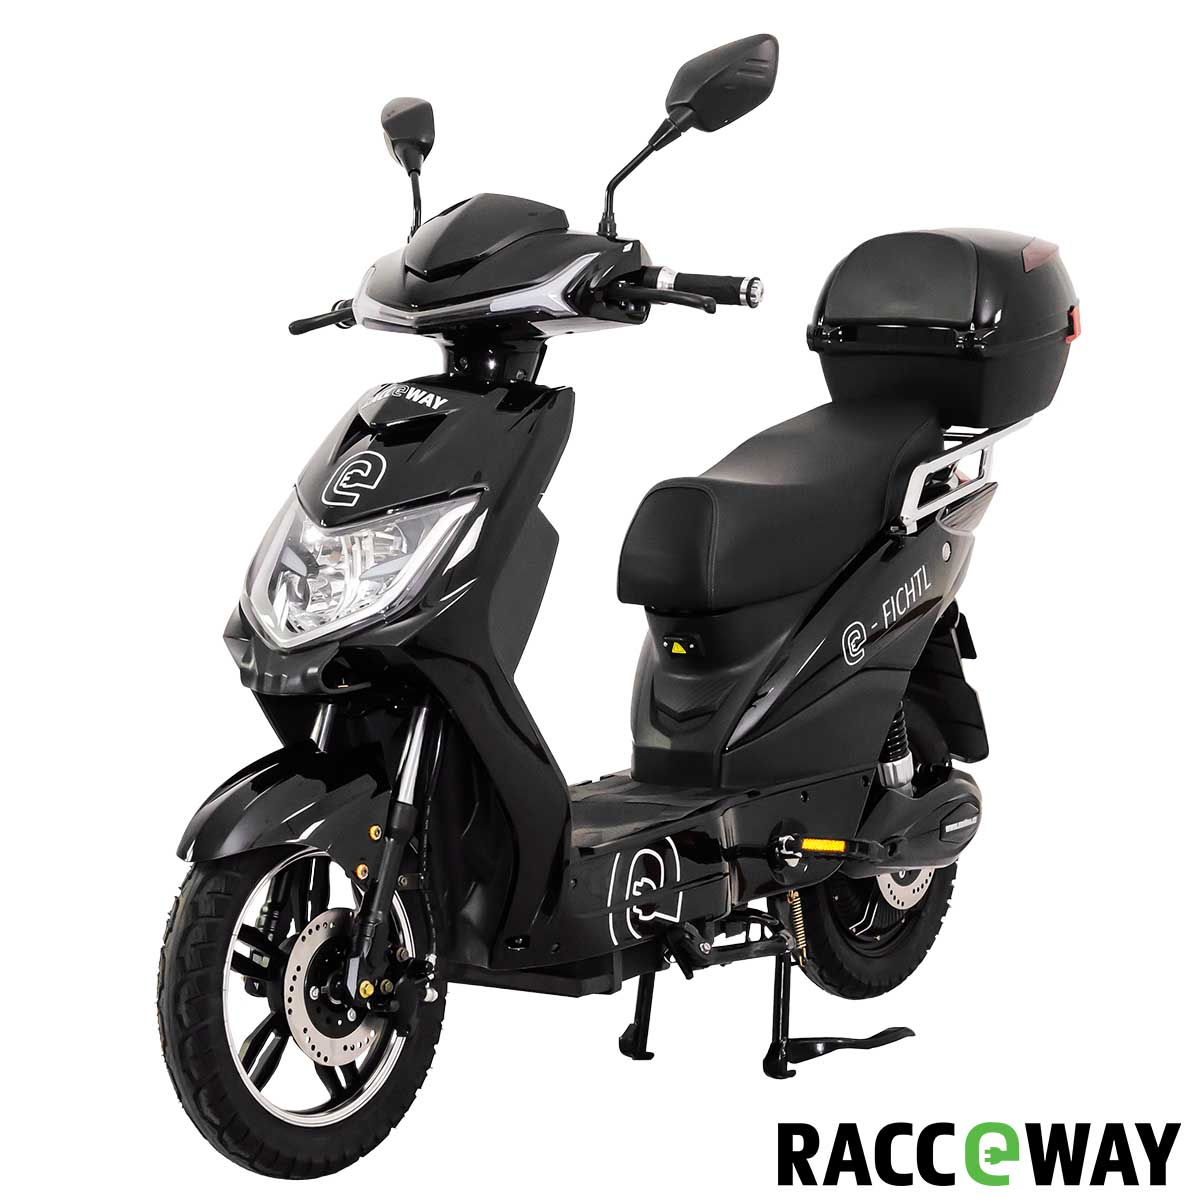 https://www.motoe.cz/inshop/catalogue/products/pictures/motoe-1f-02_a3.jpg?timestamp=20211028100327